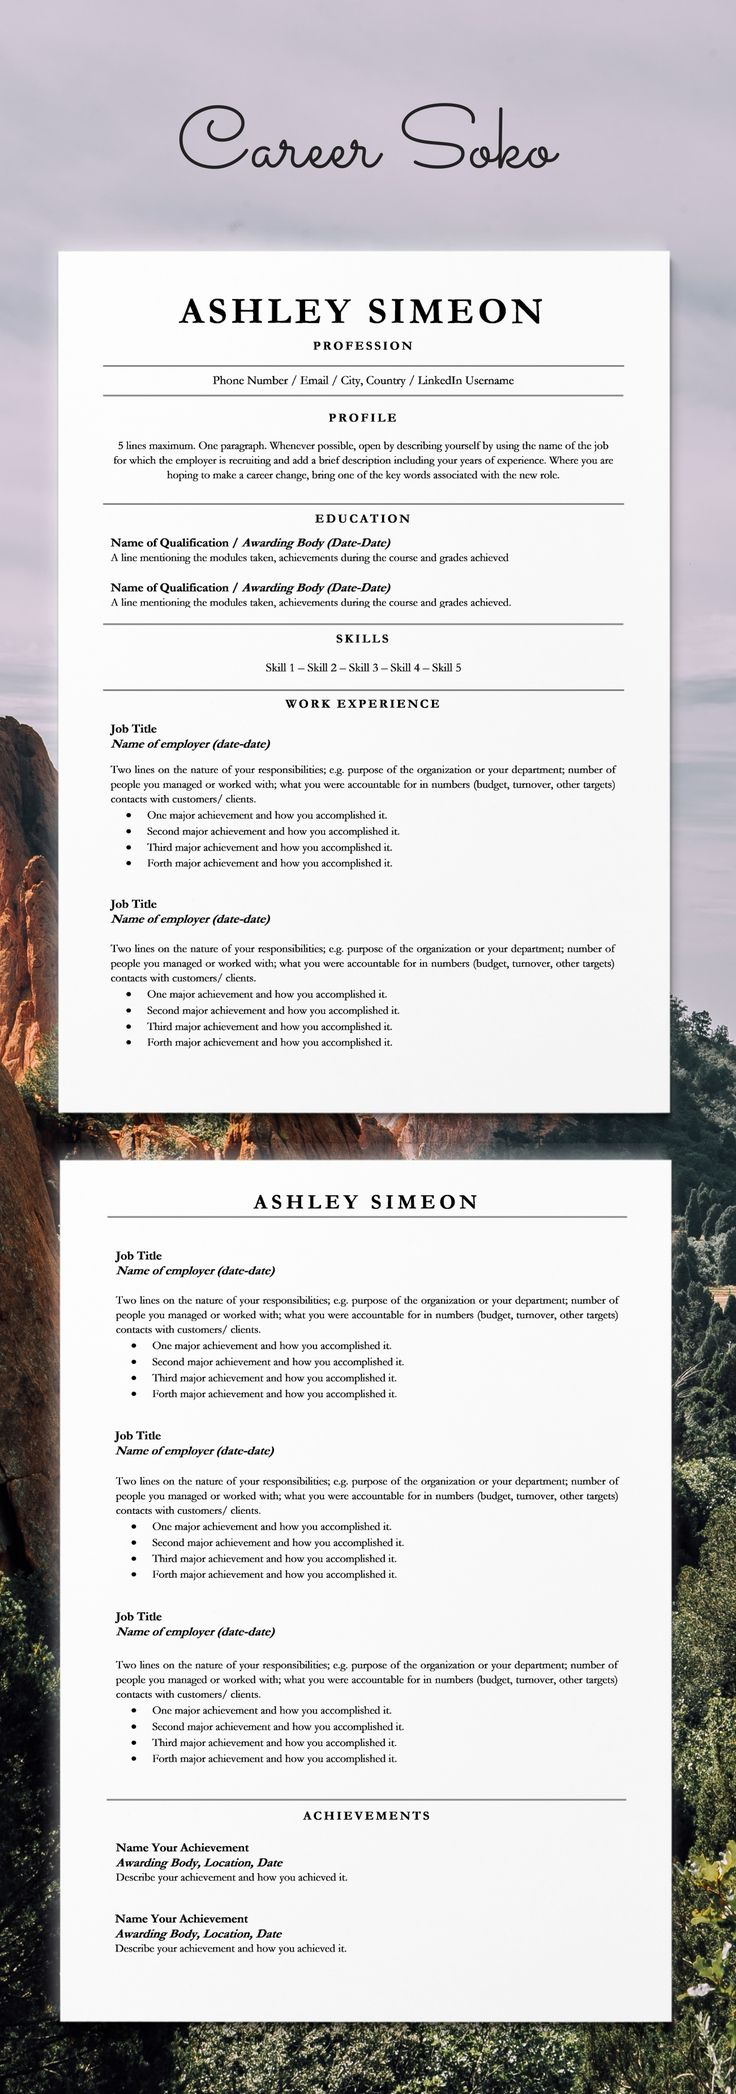 Resume Template Word CV Template Curriculum Vitae2 Page